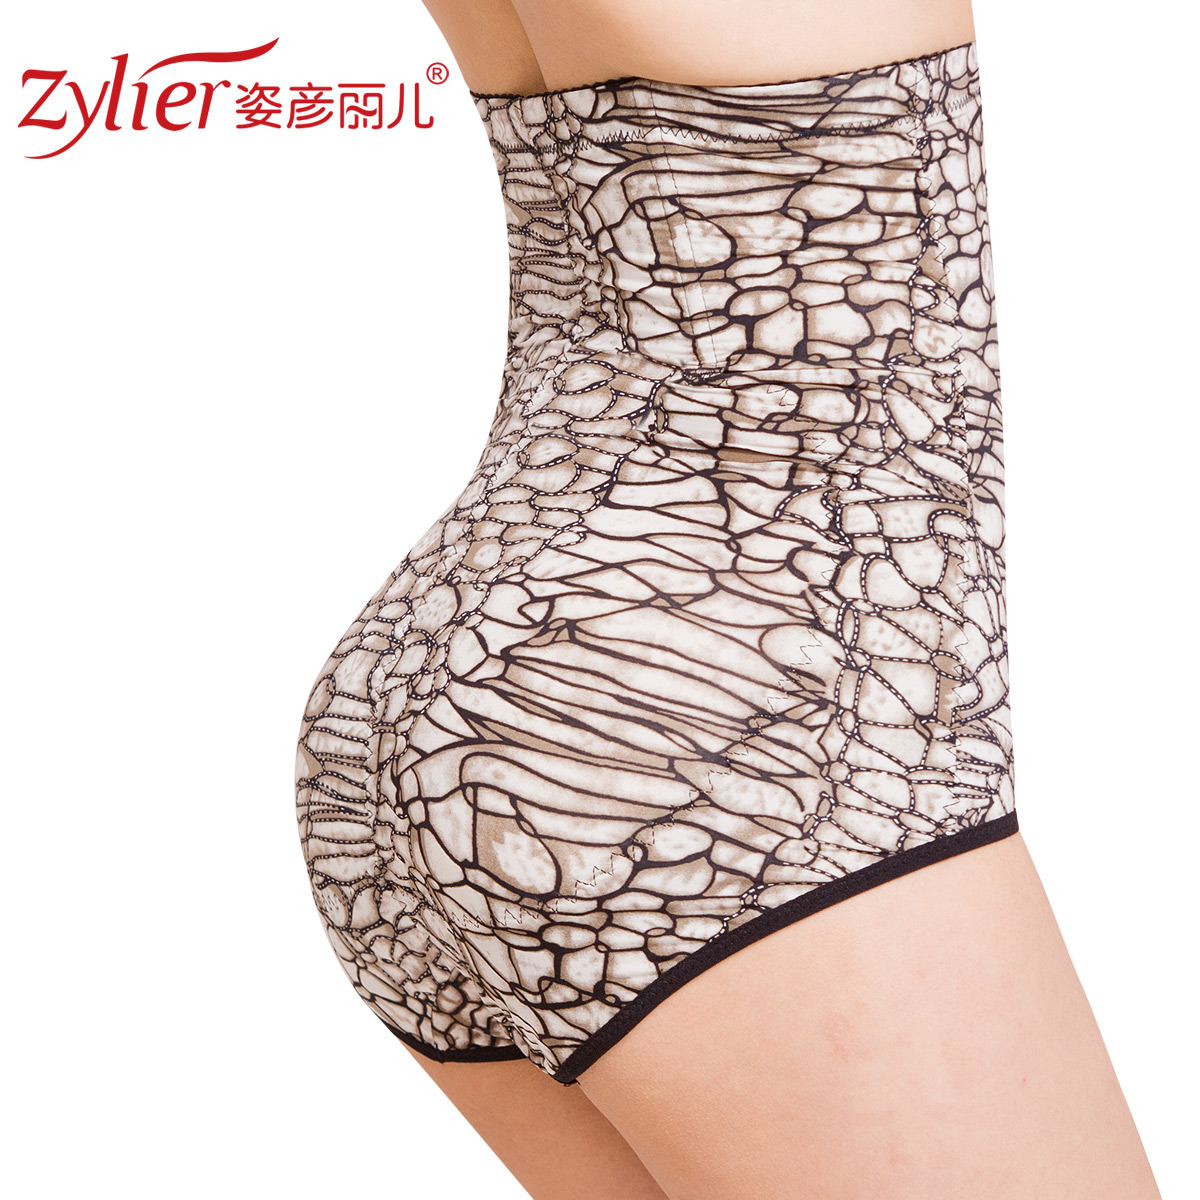 2012 winter new arrival puerperal high waist butt-lifting tight-fitting body shaping panties drawing abdomen pants sk84